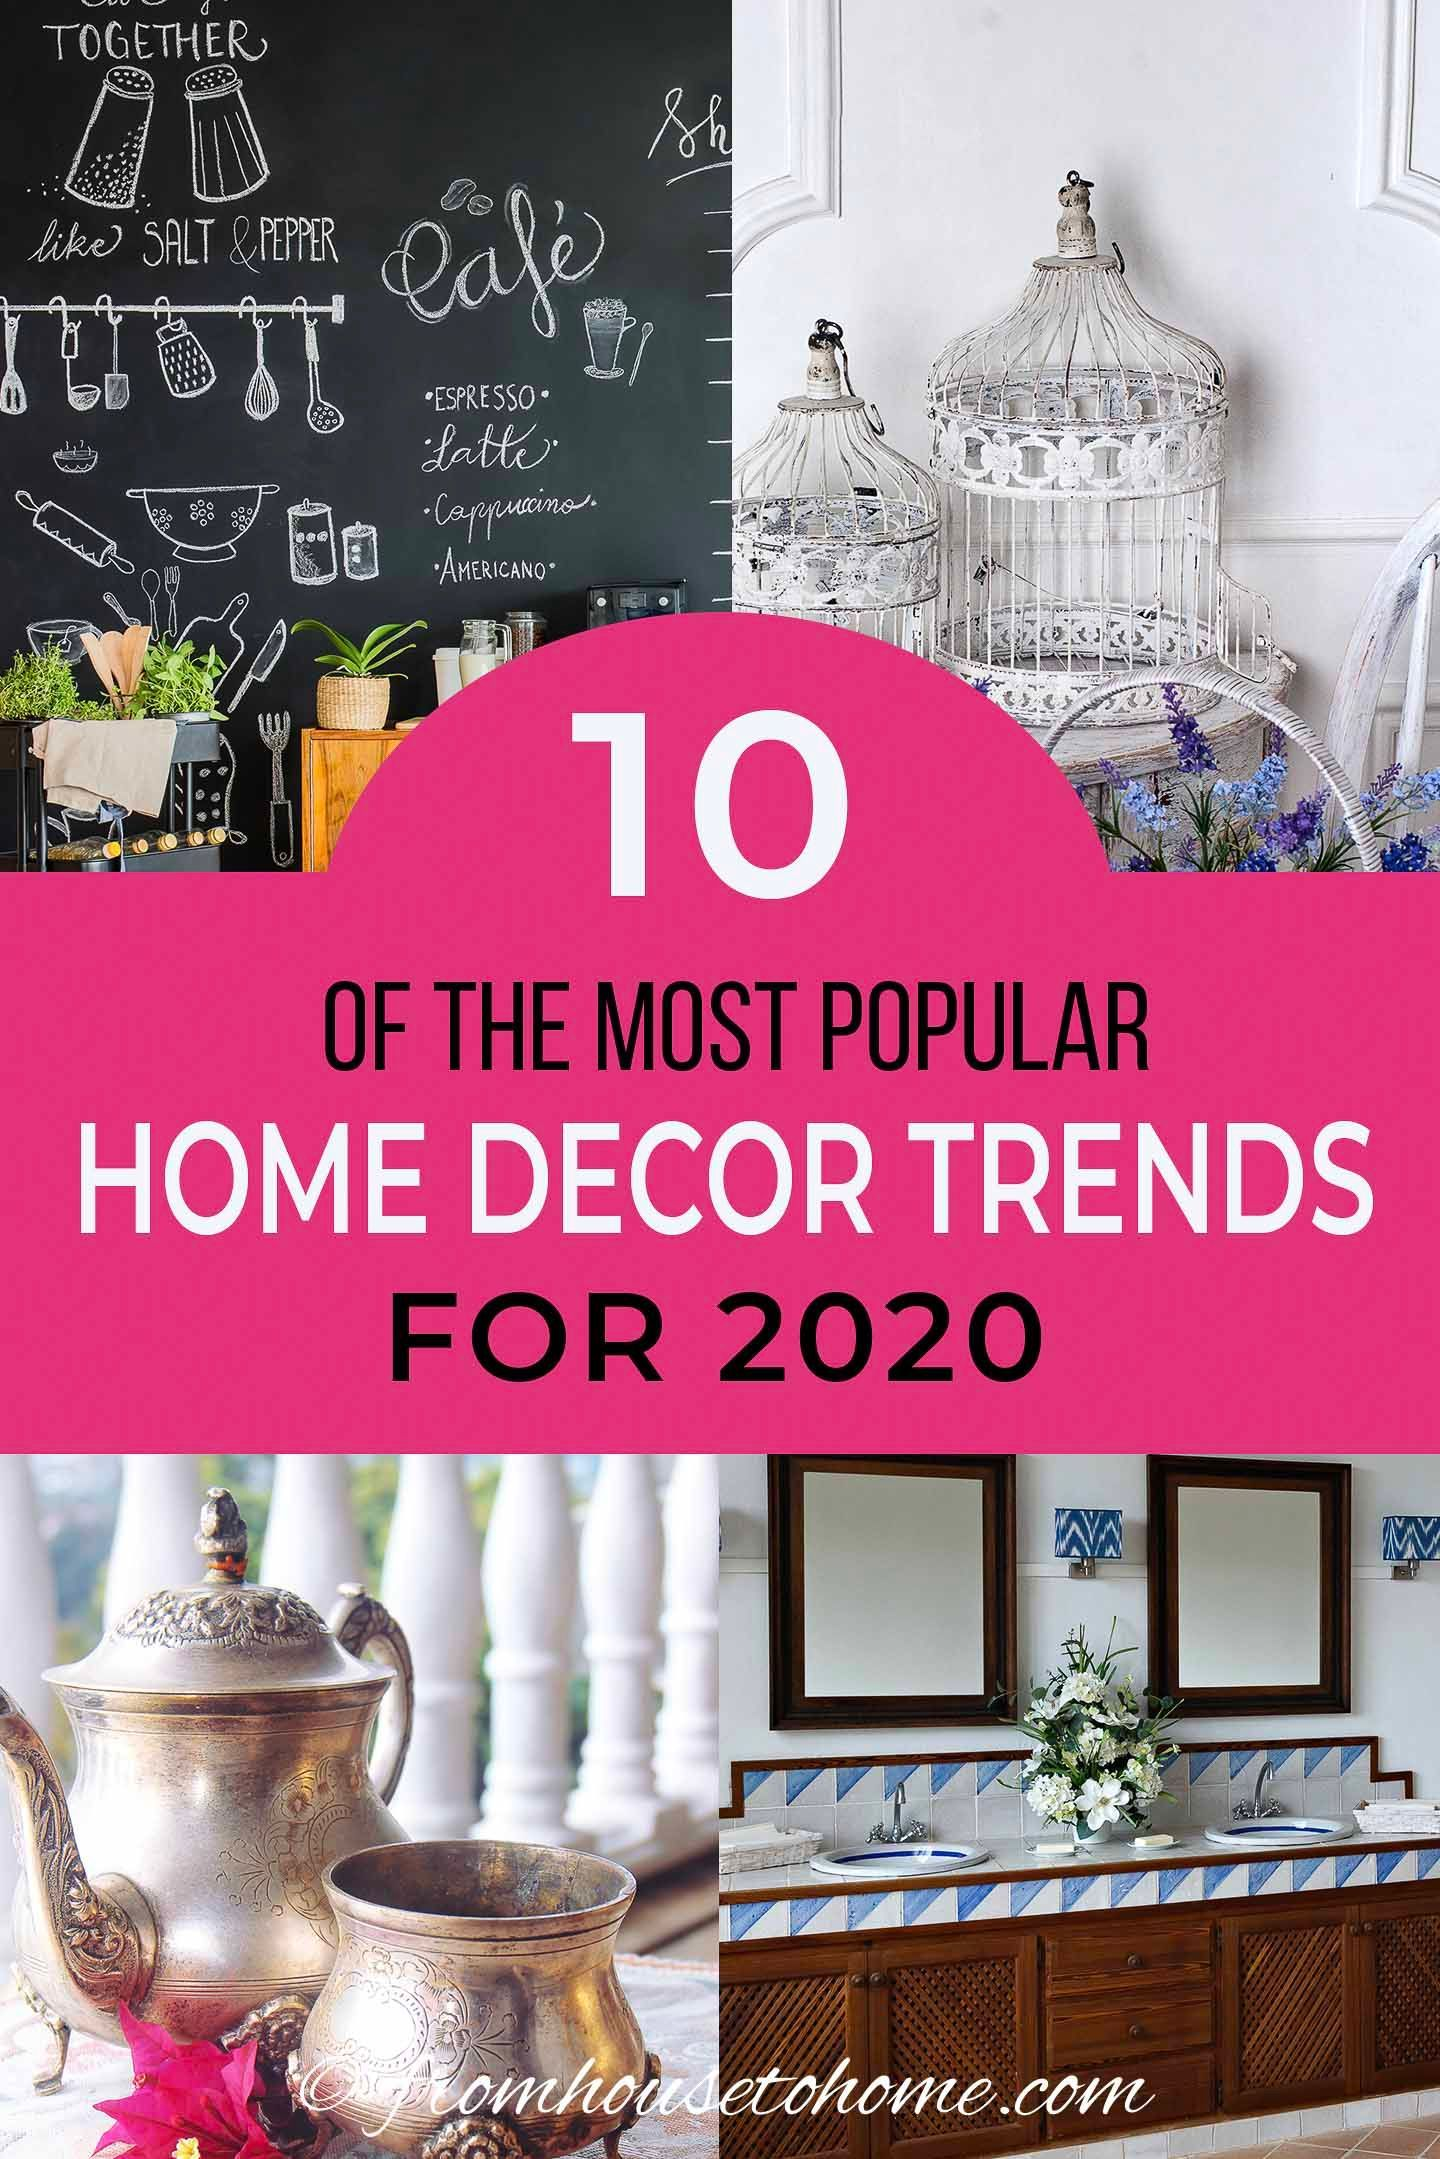 The Most Popular 2020 Interior Design Trends (according to ...